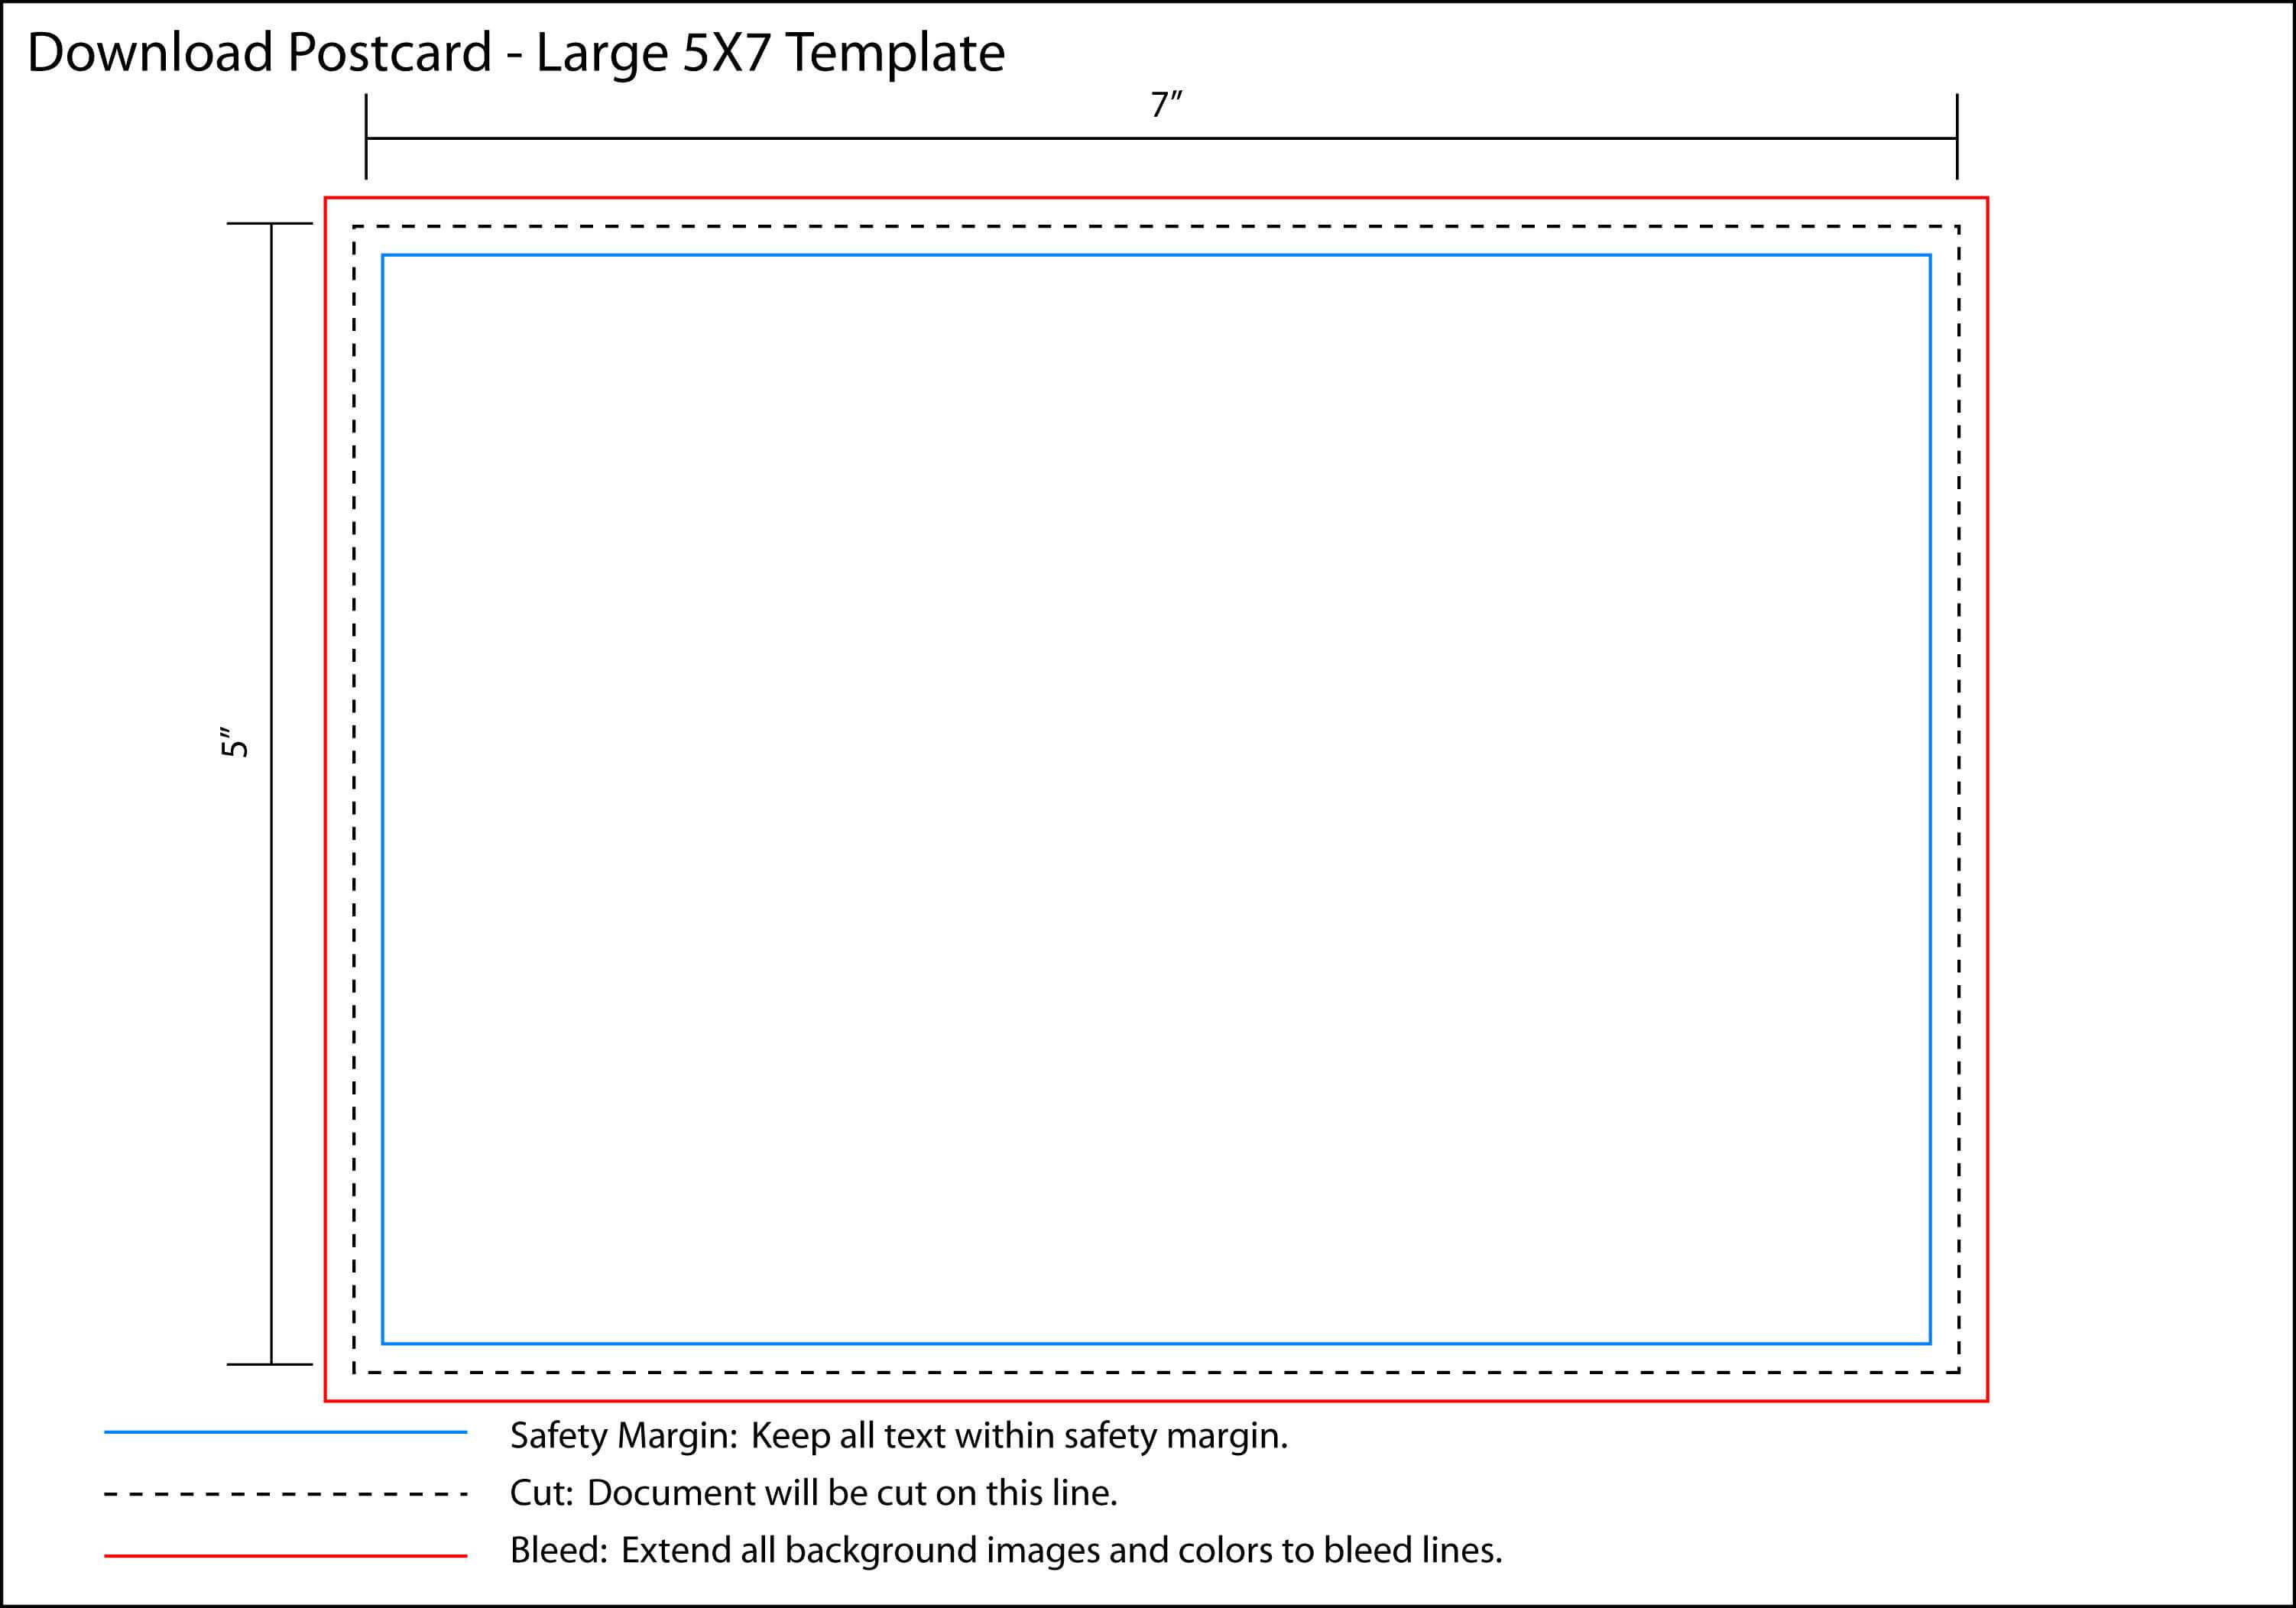 Index Card Template Open Office - Atlantaauctionco For Index Card Template Open Office